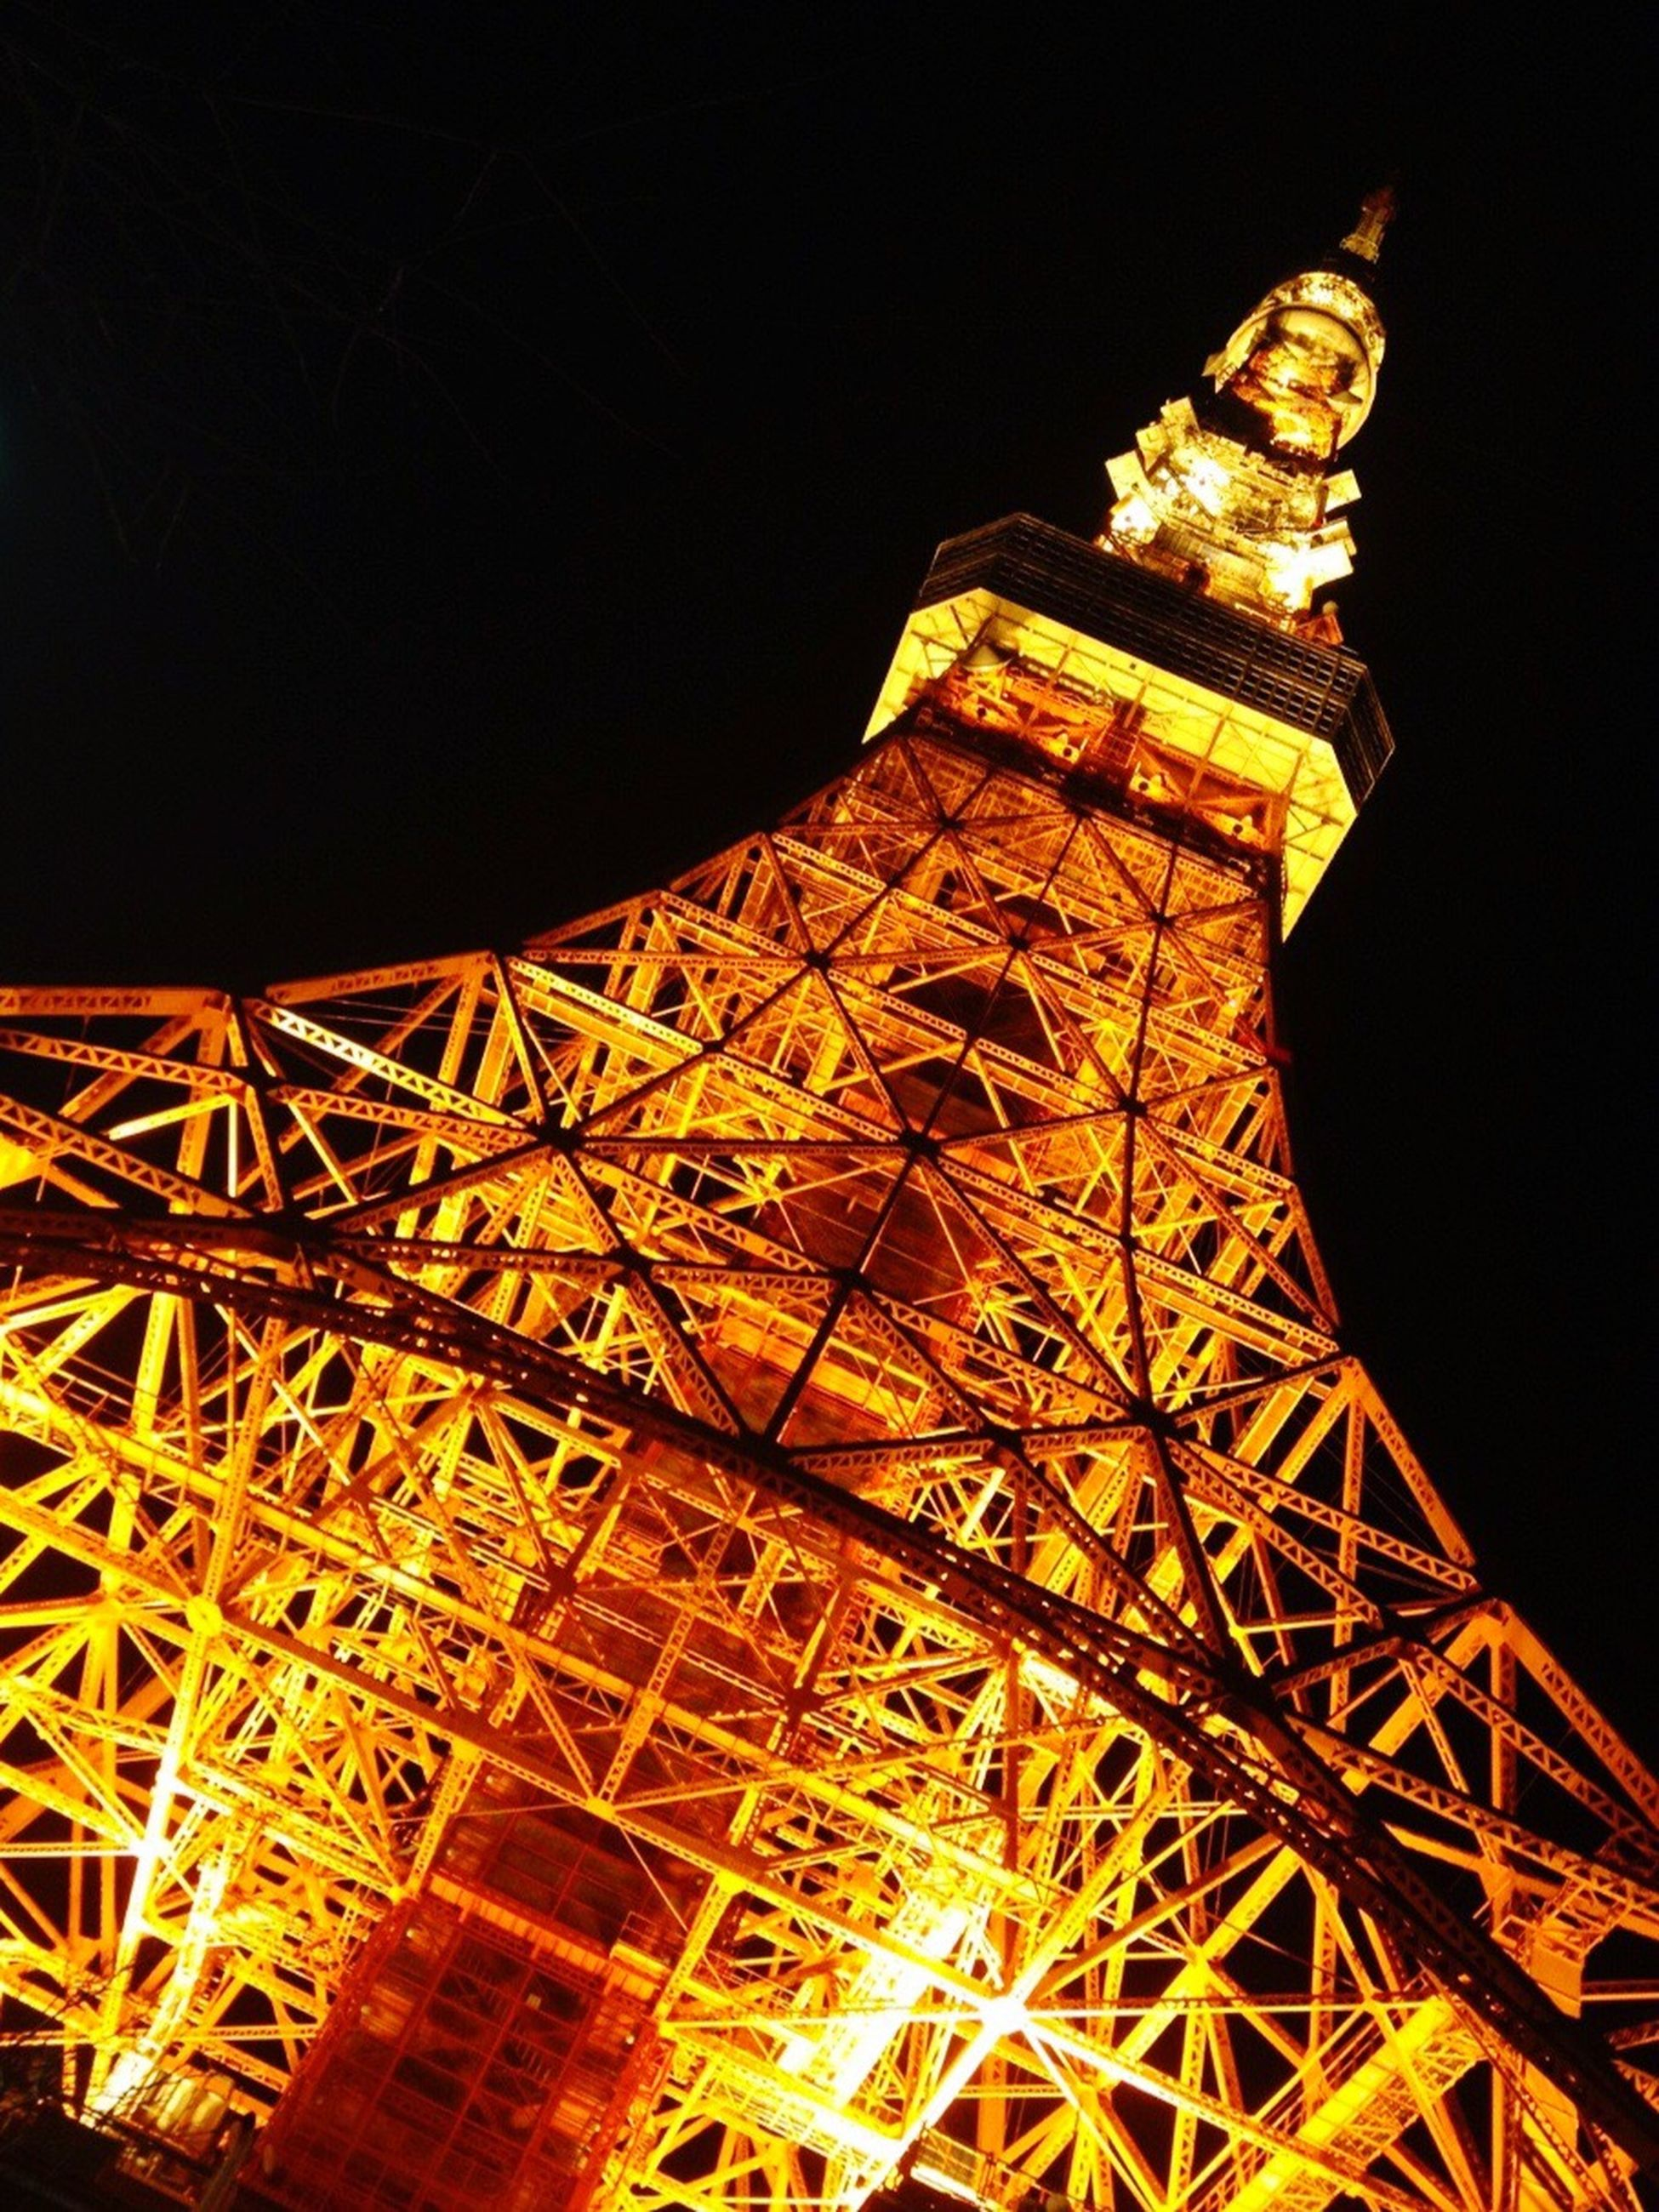 night, built structure, famous place, low angle view, architecture, international landmark, illuminated, travel destinations, tourism, capital cities, travel, clear sky, tower, eiffel tower, copy space, tall - high, culture, building exterior, sky, metal